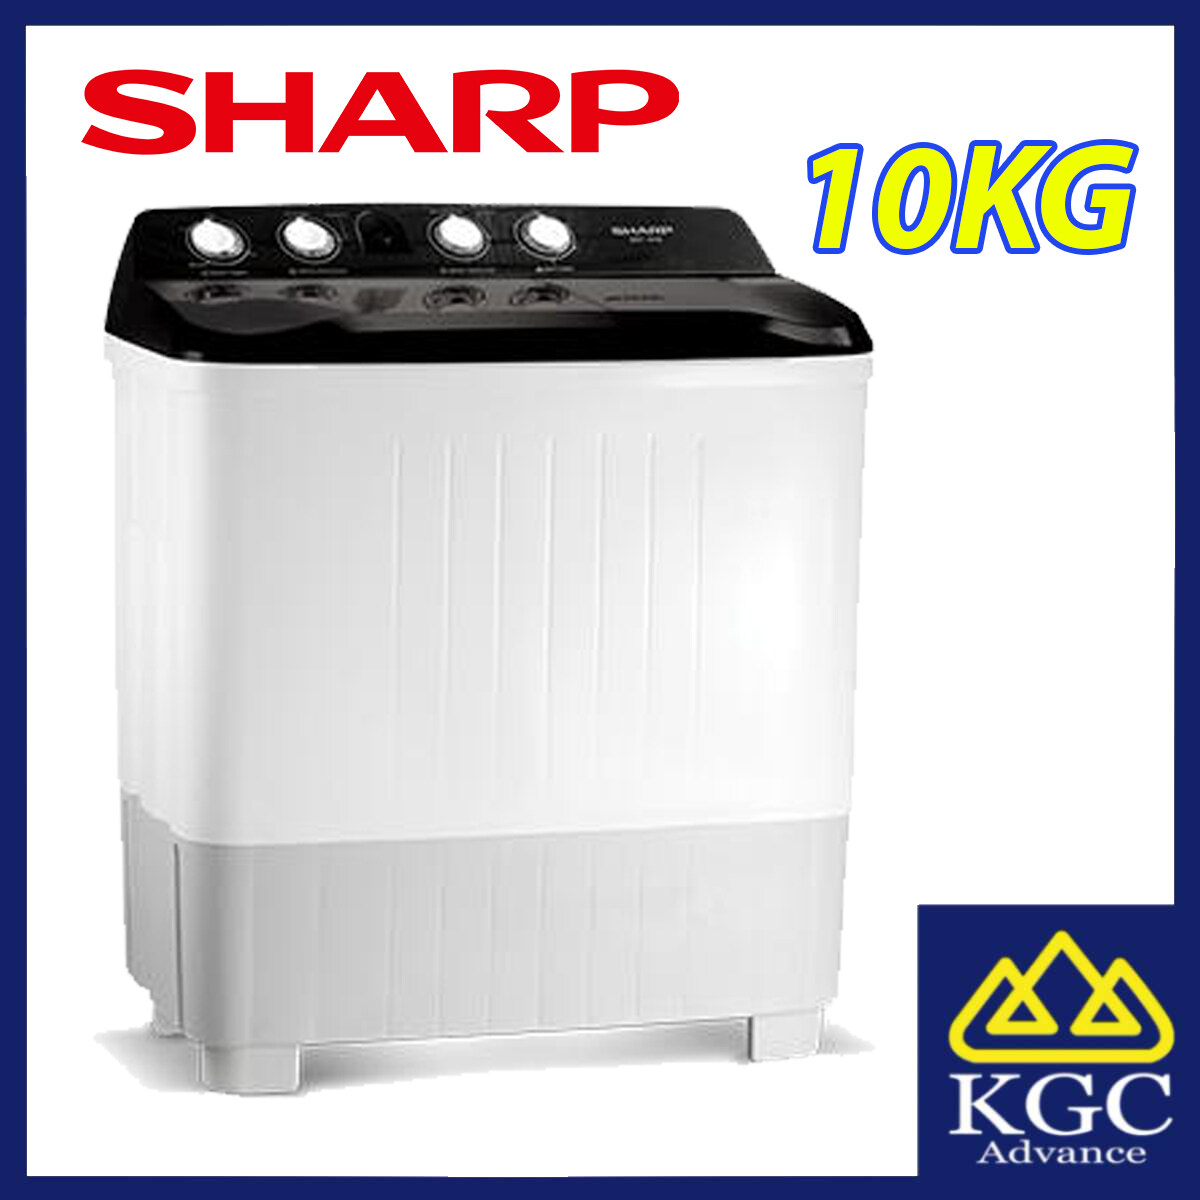 Sharp 14Kg Semi Auto Washing Machine Washer EST1416